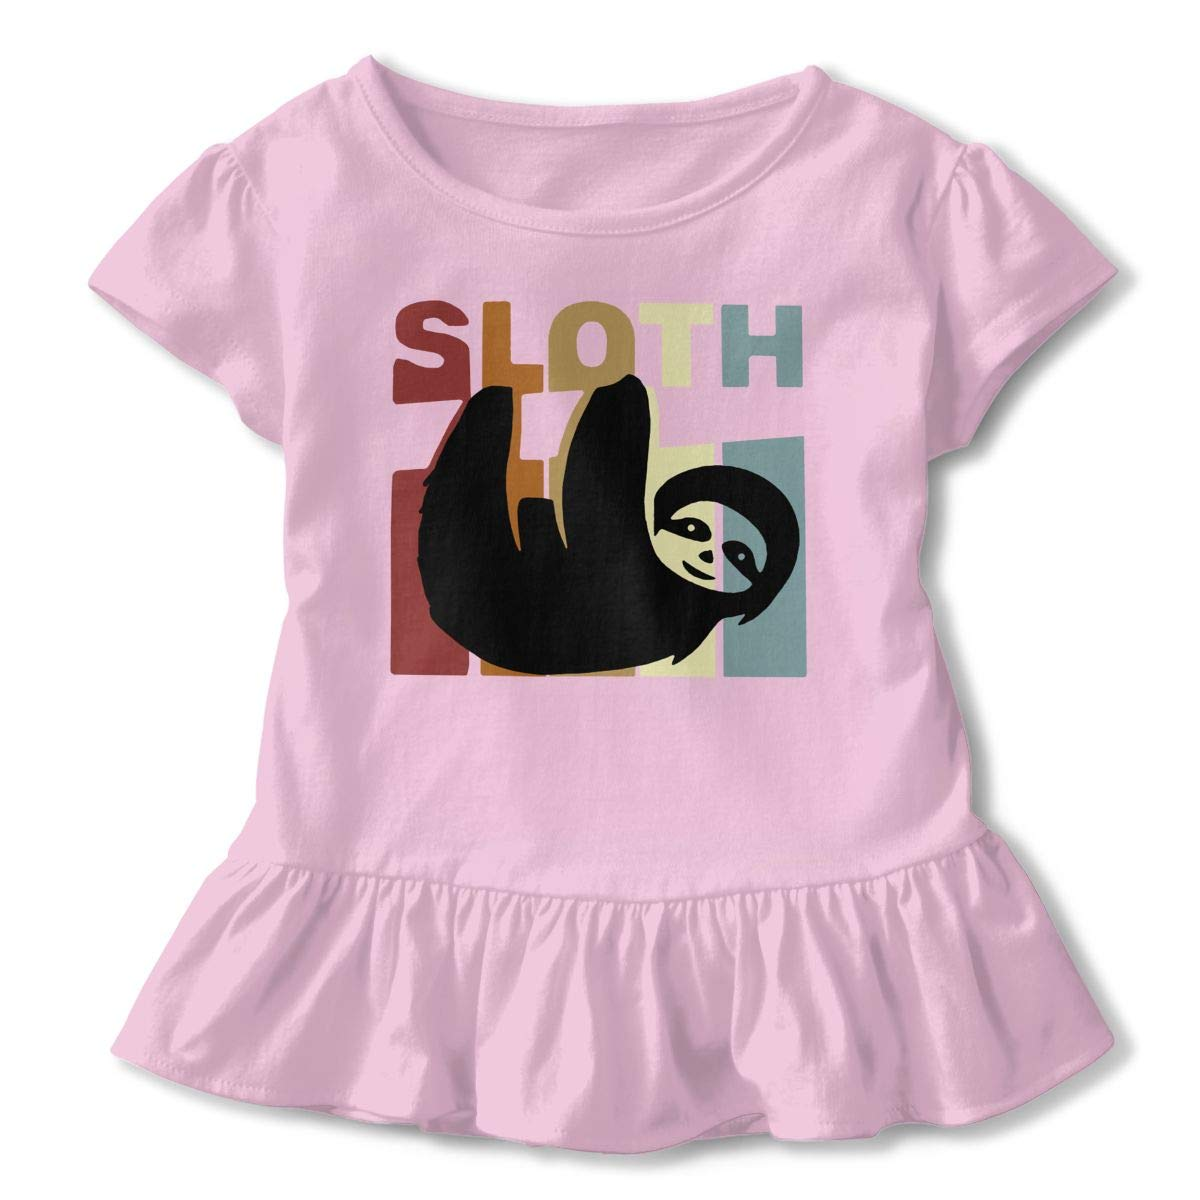 DXTDCMMe Retro Sloth Baby Girl Ruffle T-Shirt Crew Neck Tees for 2-6T